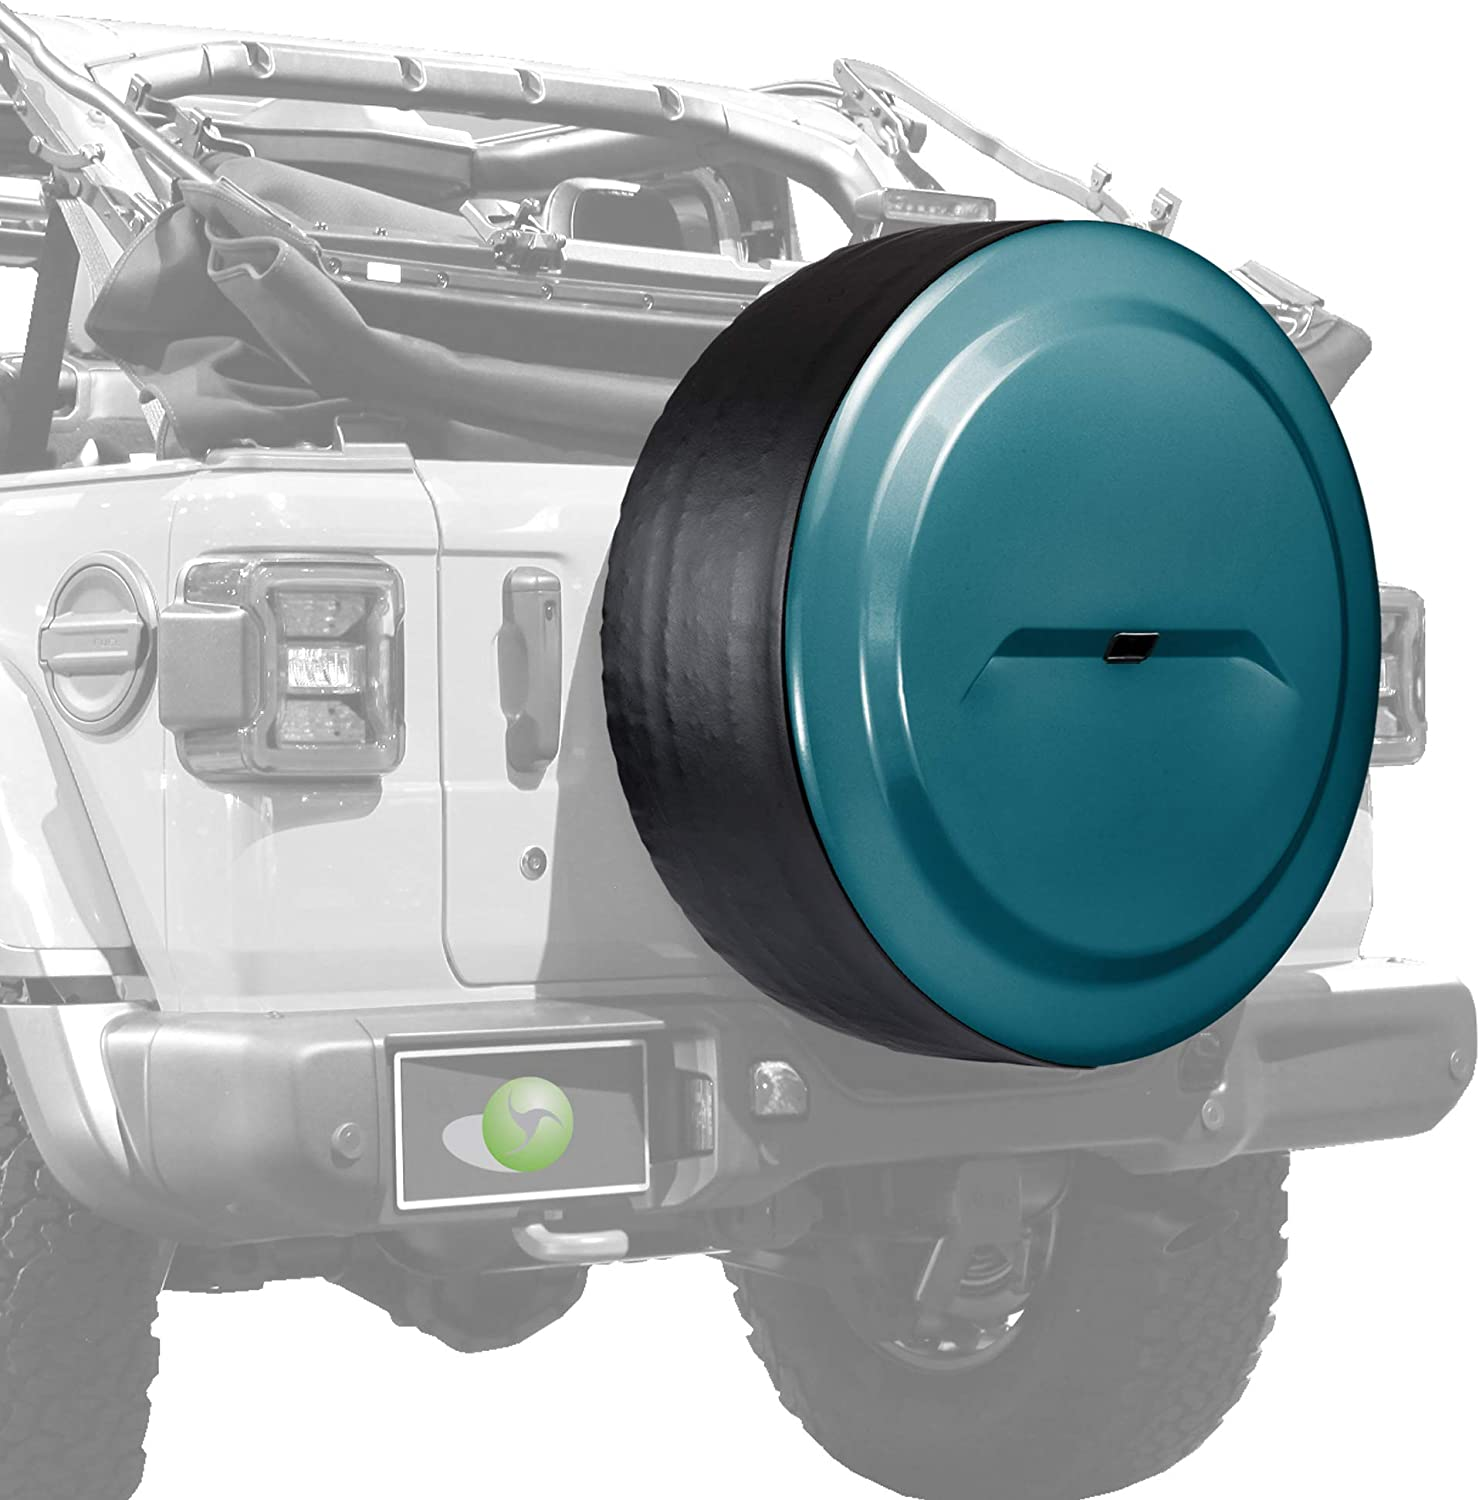 for use with 2018-2019 Jeep Wrangler JL 32 Color Matched Rigid JL Tire Cover - Bikini Plastic Face /& Vinyl Band with Back-up Camera Boomerang